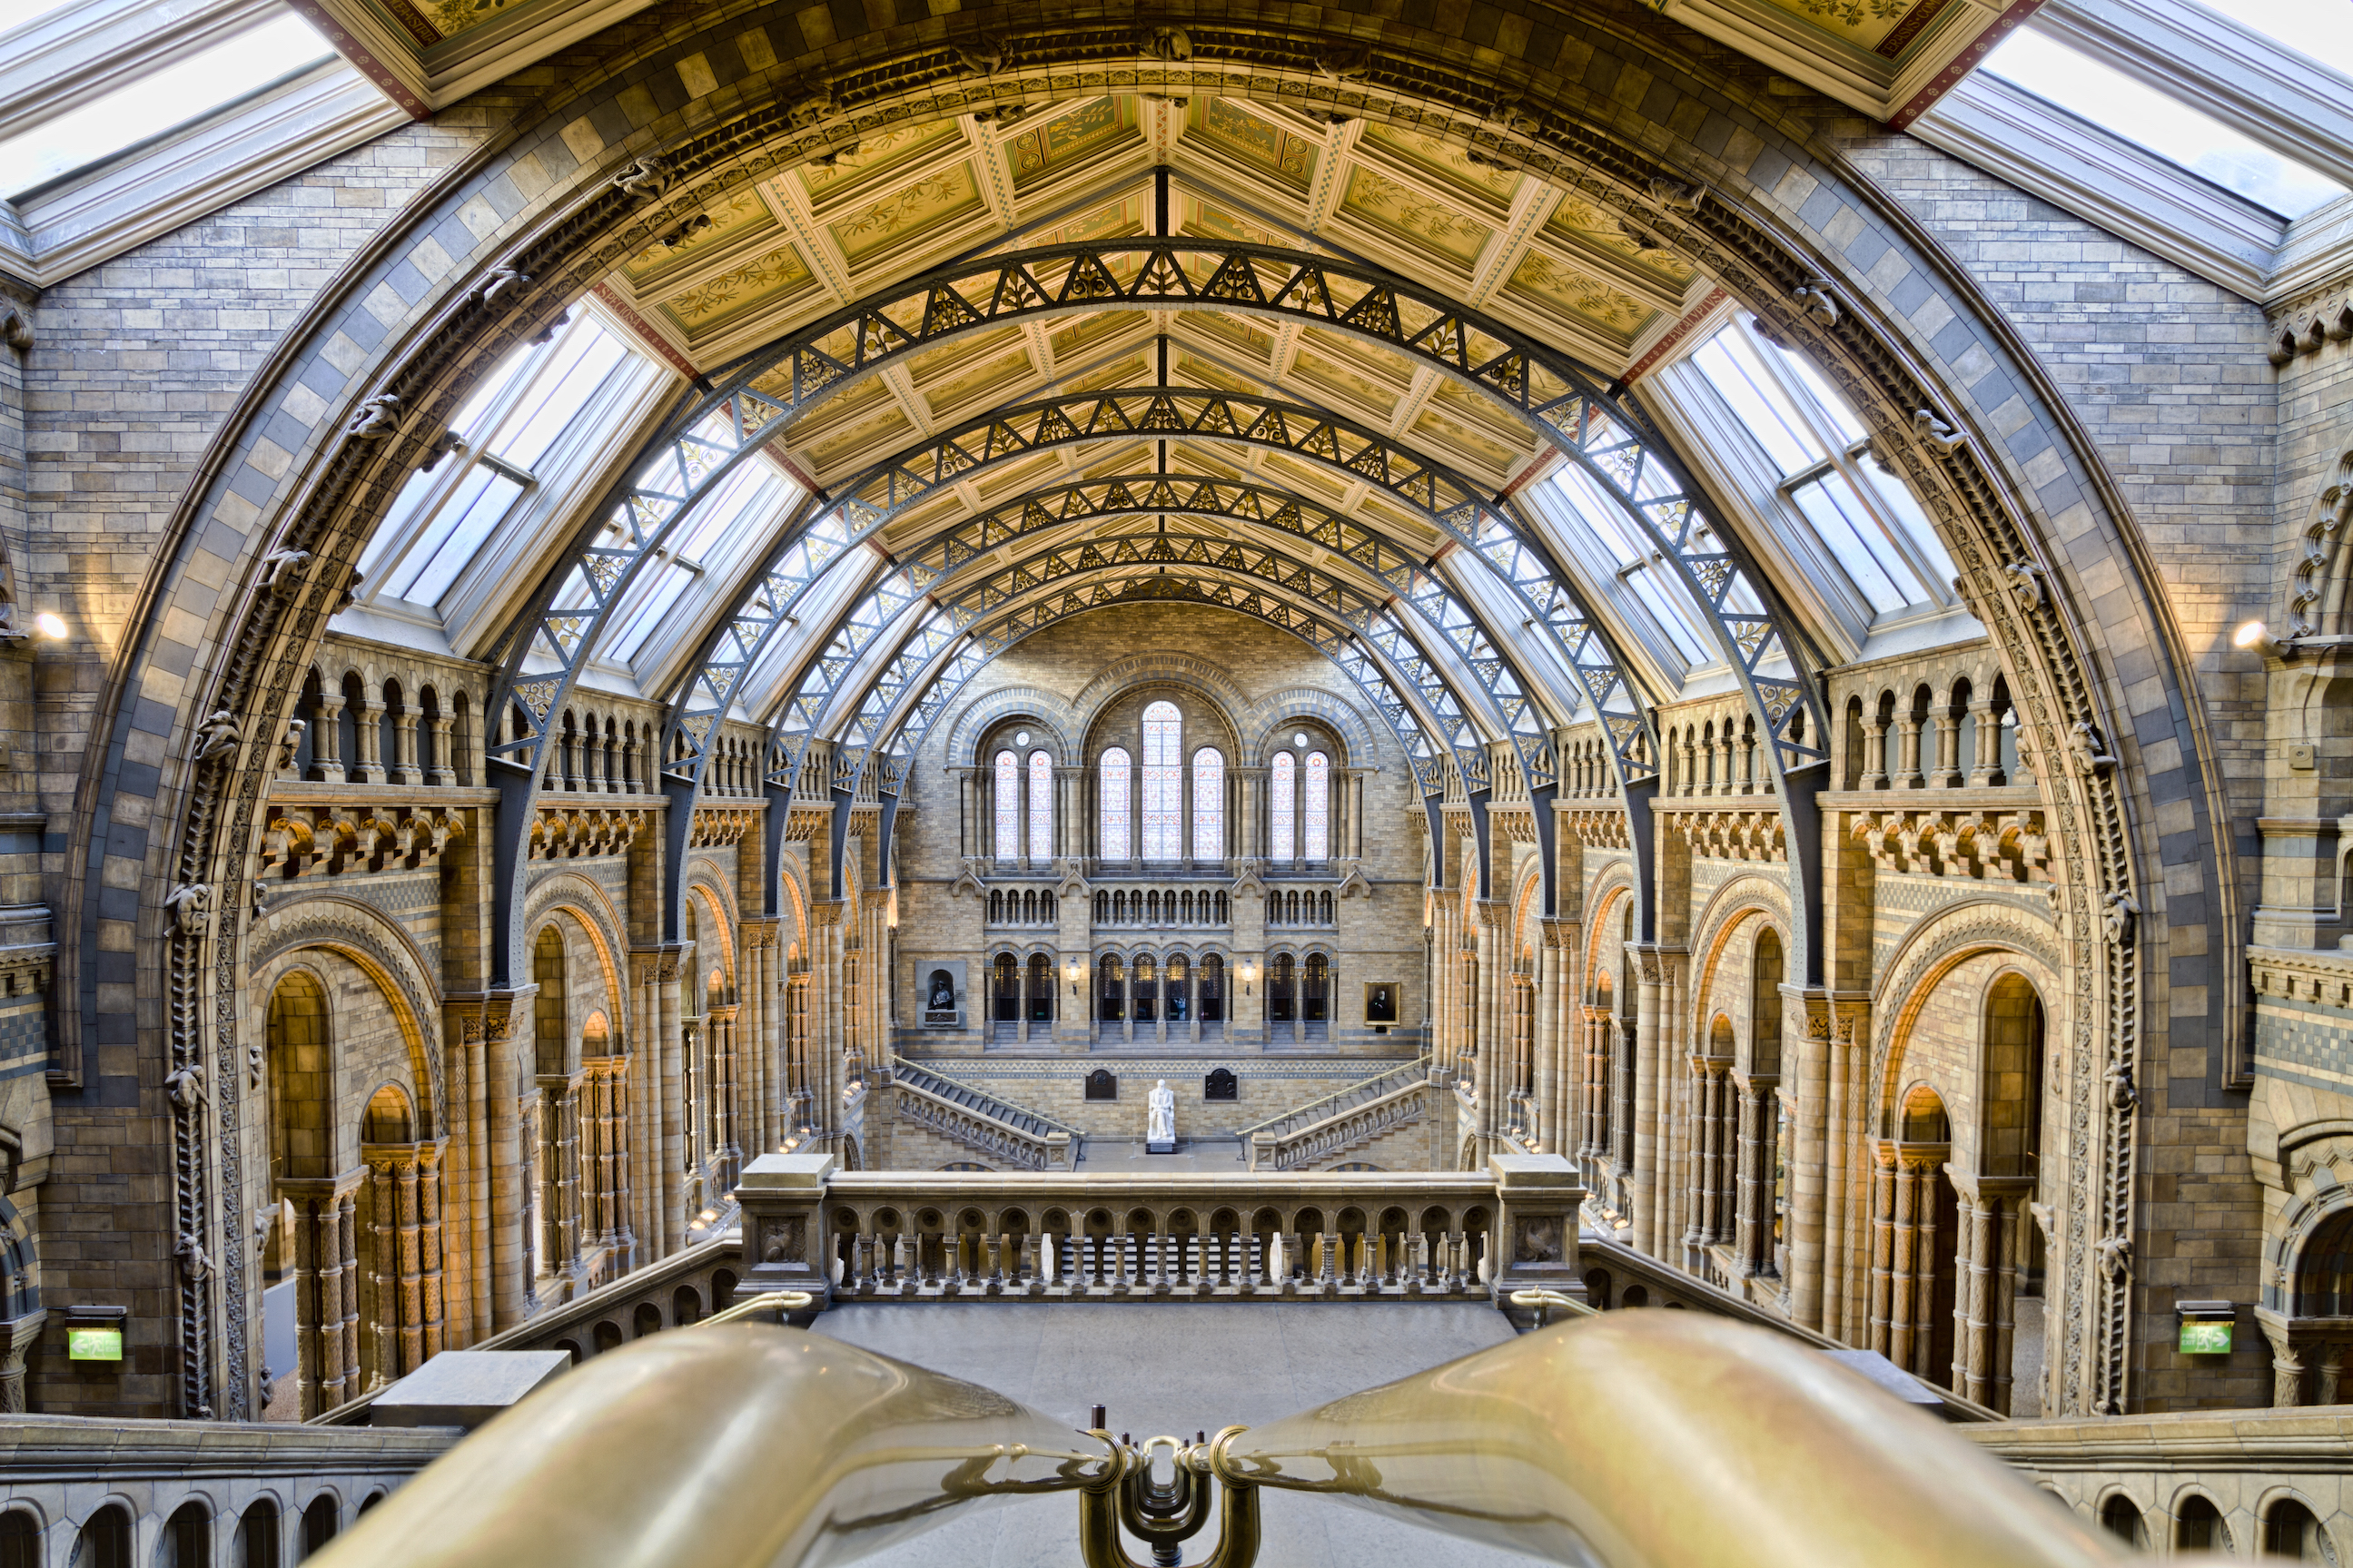 Natural History Museum: 'We hope people will discover new species with our open data'